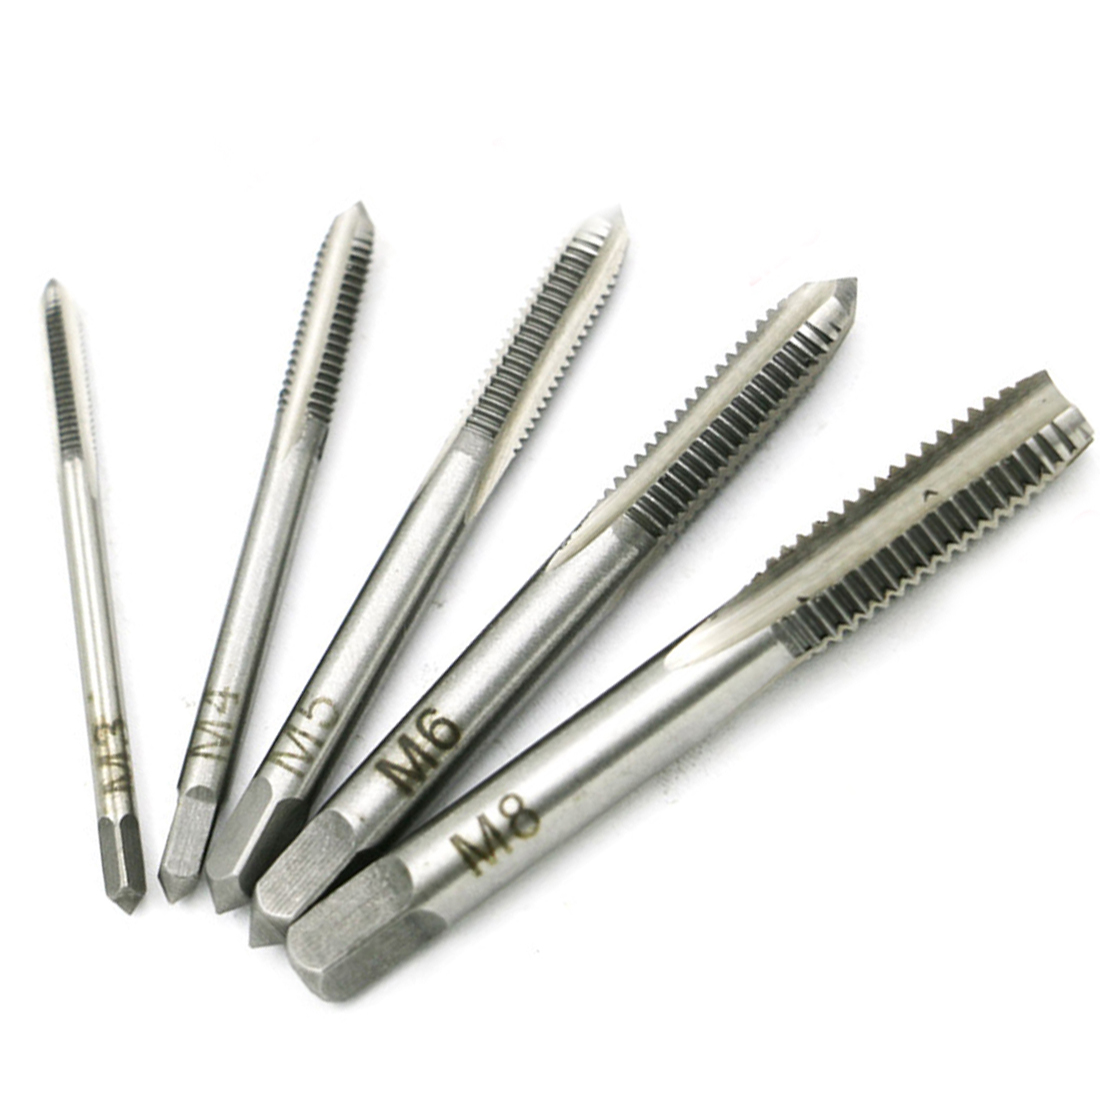 New 5PCS/Set HSS M3 M4 M5 M6 M8 Machine Spiral Point Straight Fluted Screw Thread Hand Tap Drill 6 in 1 adjustable tap wrench tapping screw thread metric plugs tap set m3 m4 m5 m6 m8 straight flute hand screw thread